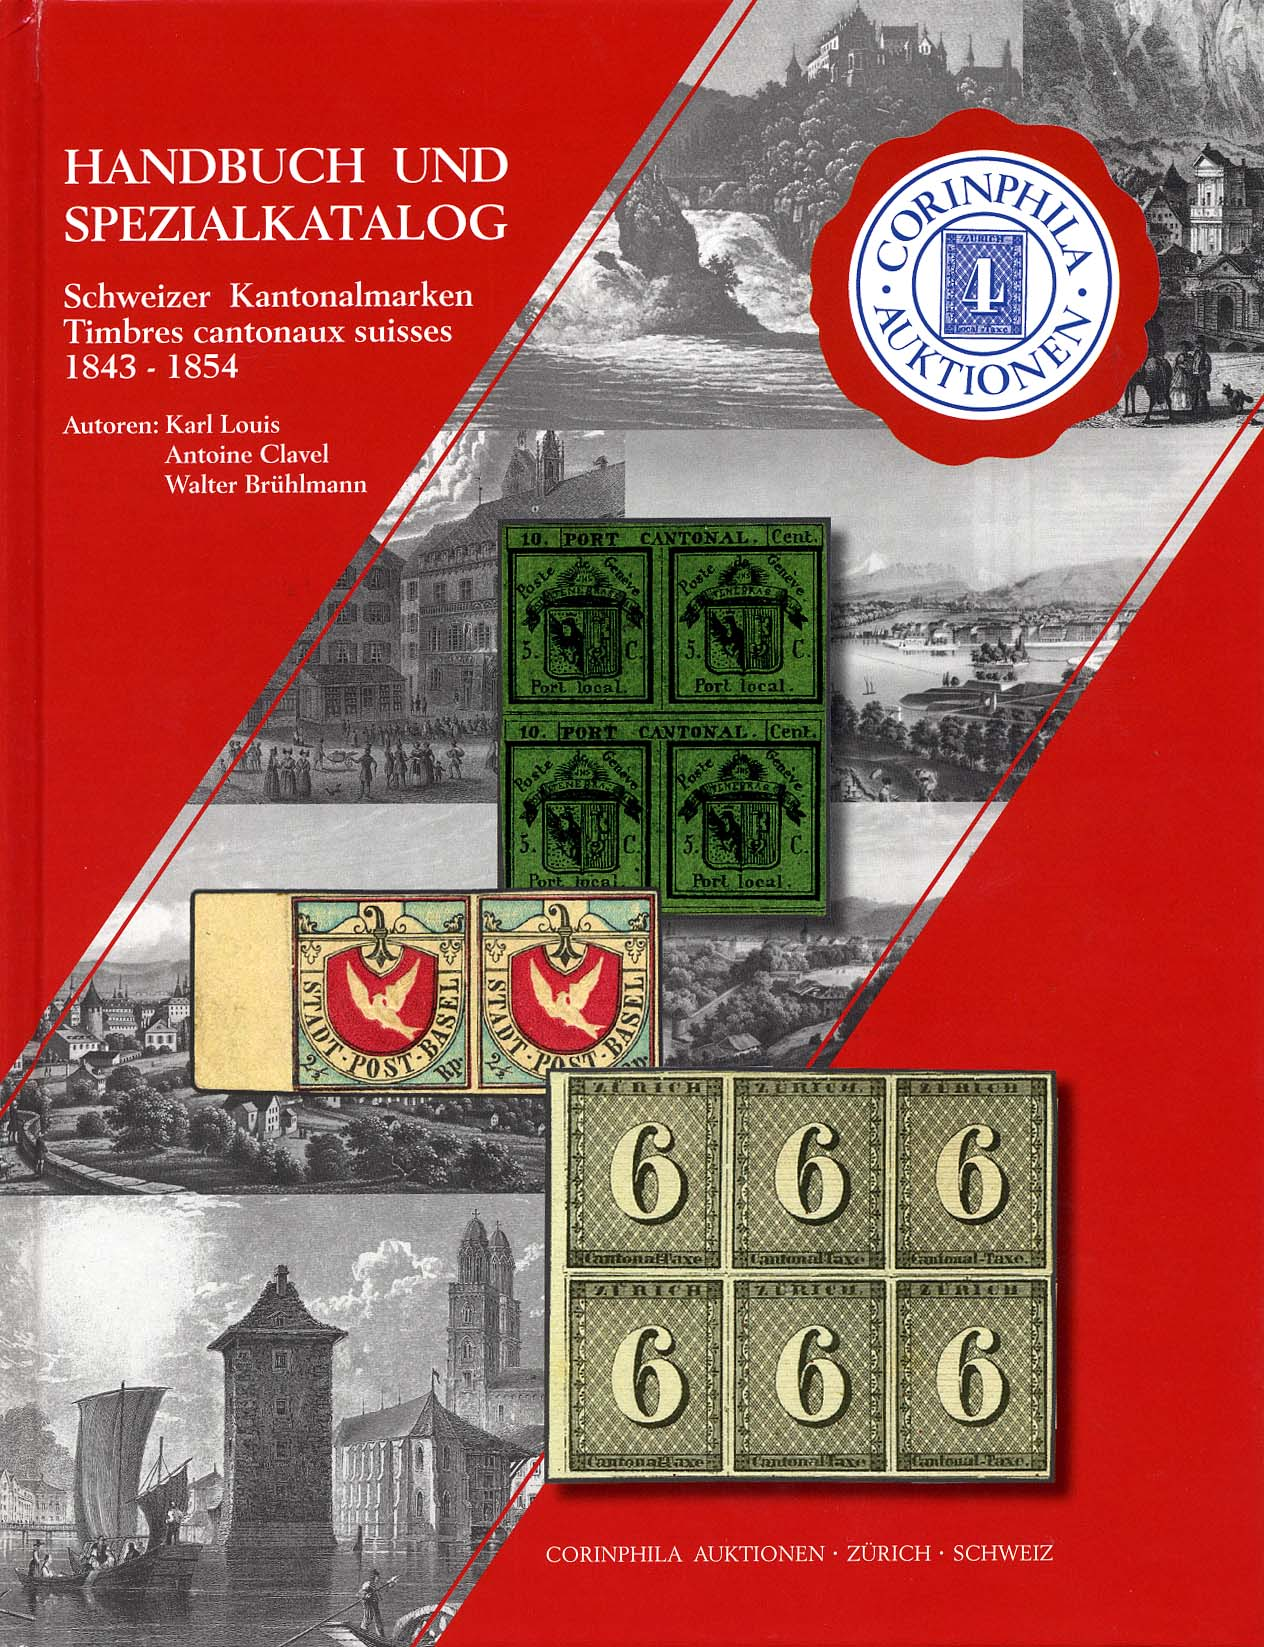 Reference book and Special Catalogue Schweizer Kantonalmarken